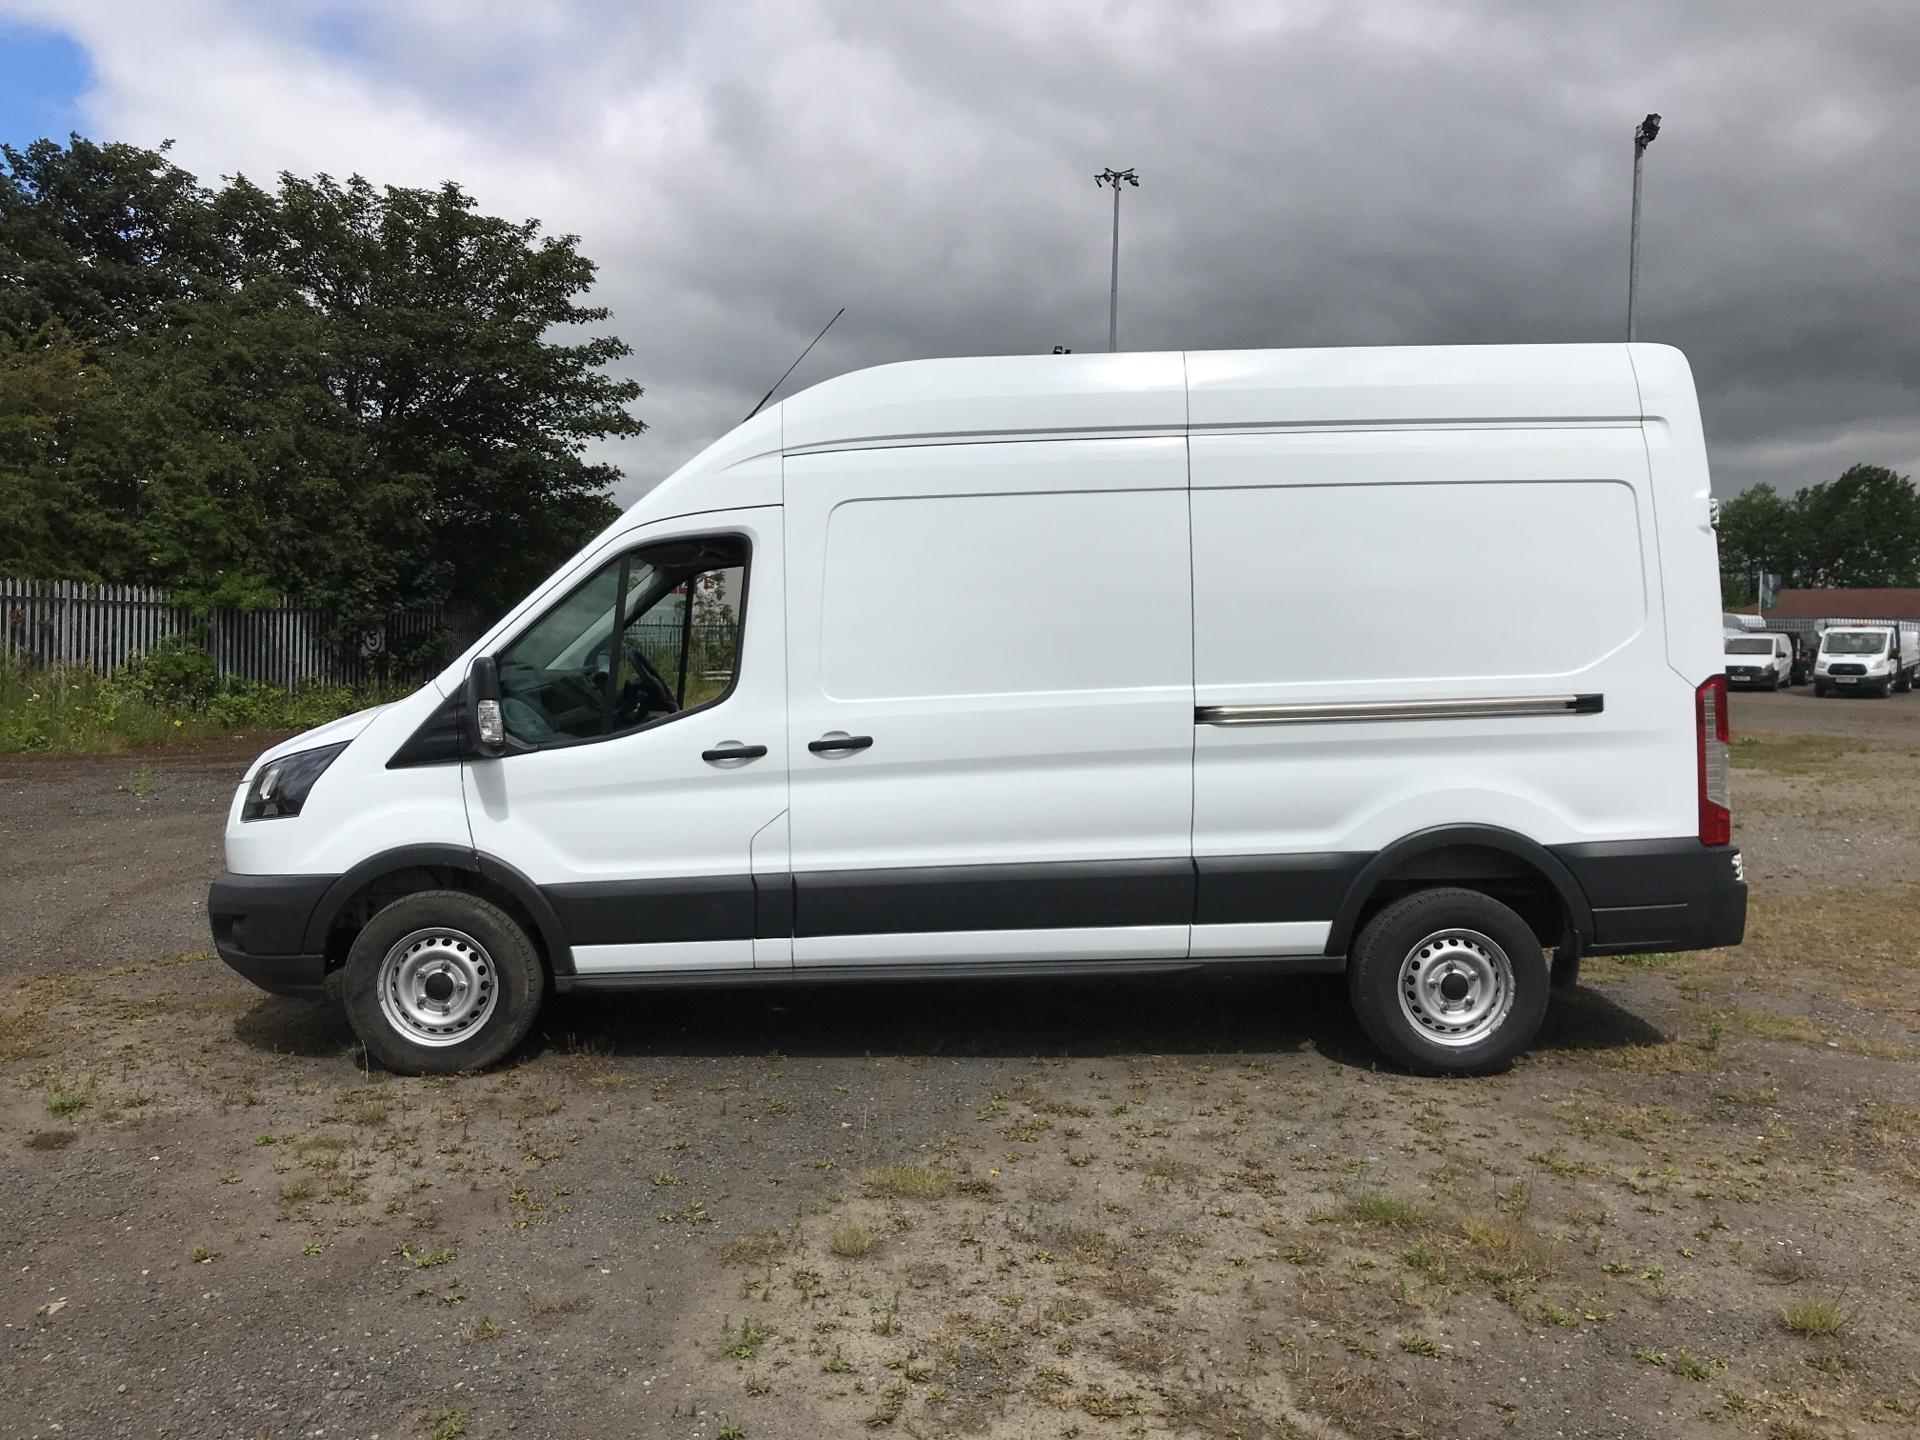 2017 Ford Transit 2.0 Tdci 130Ps H3 Van *VALUE RANGE VEHICLE CONDITION REFLECTED IN PRICE* (FL17VUW) Image 6